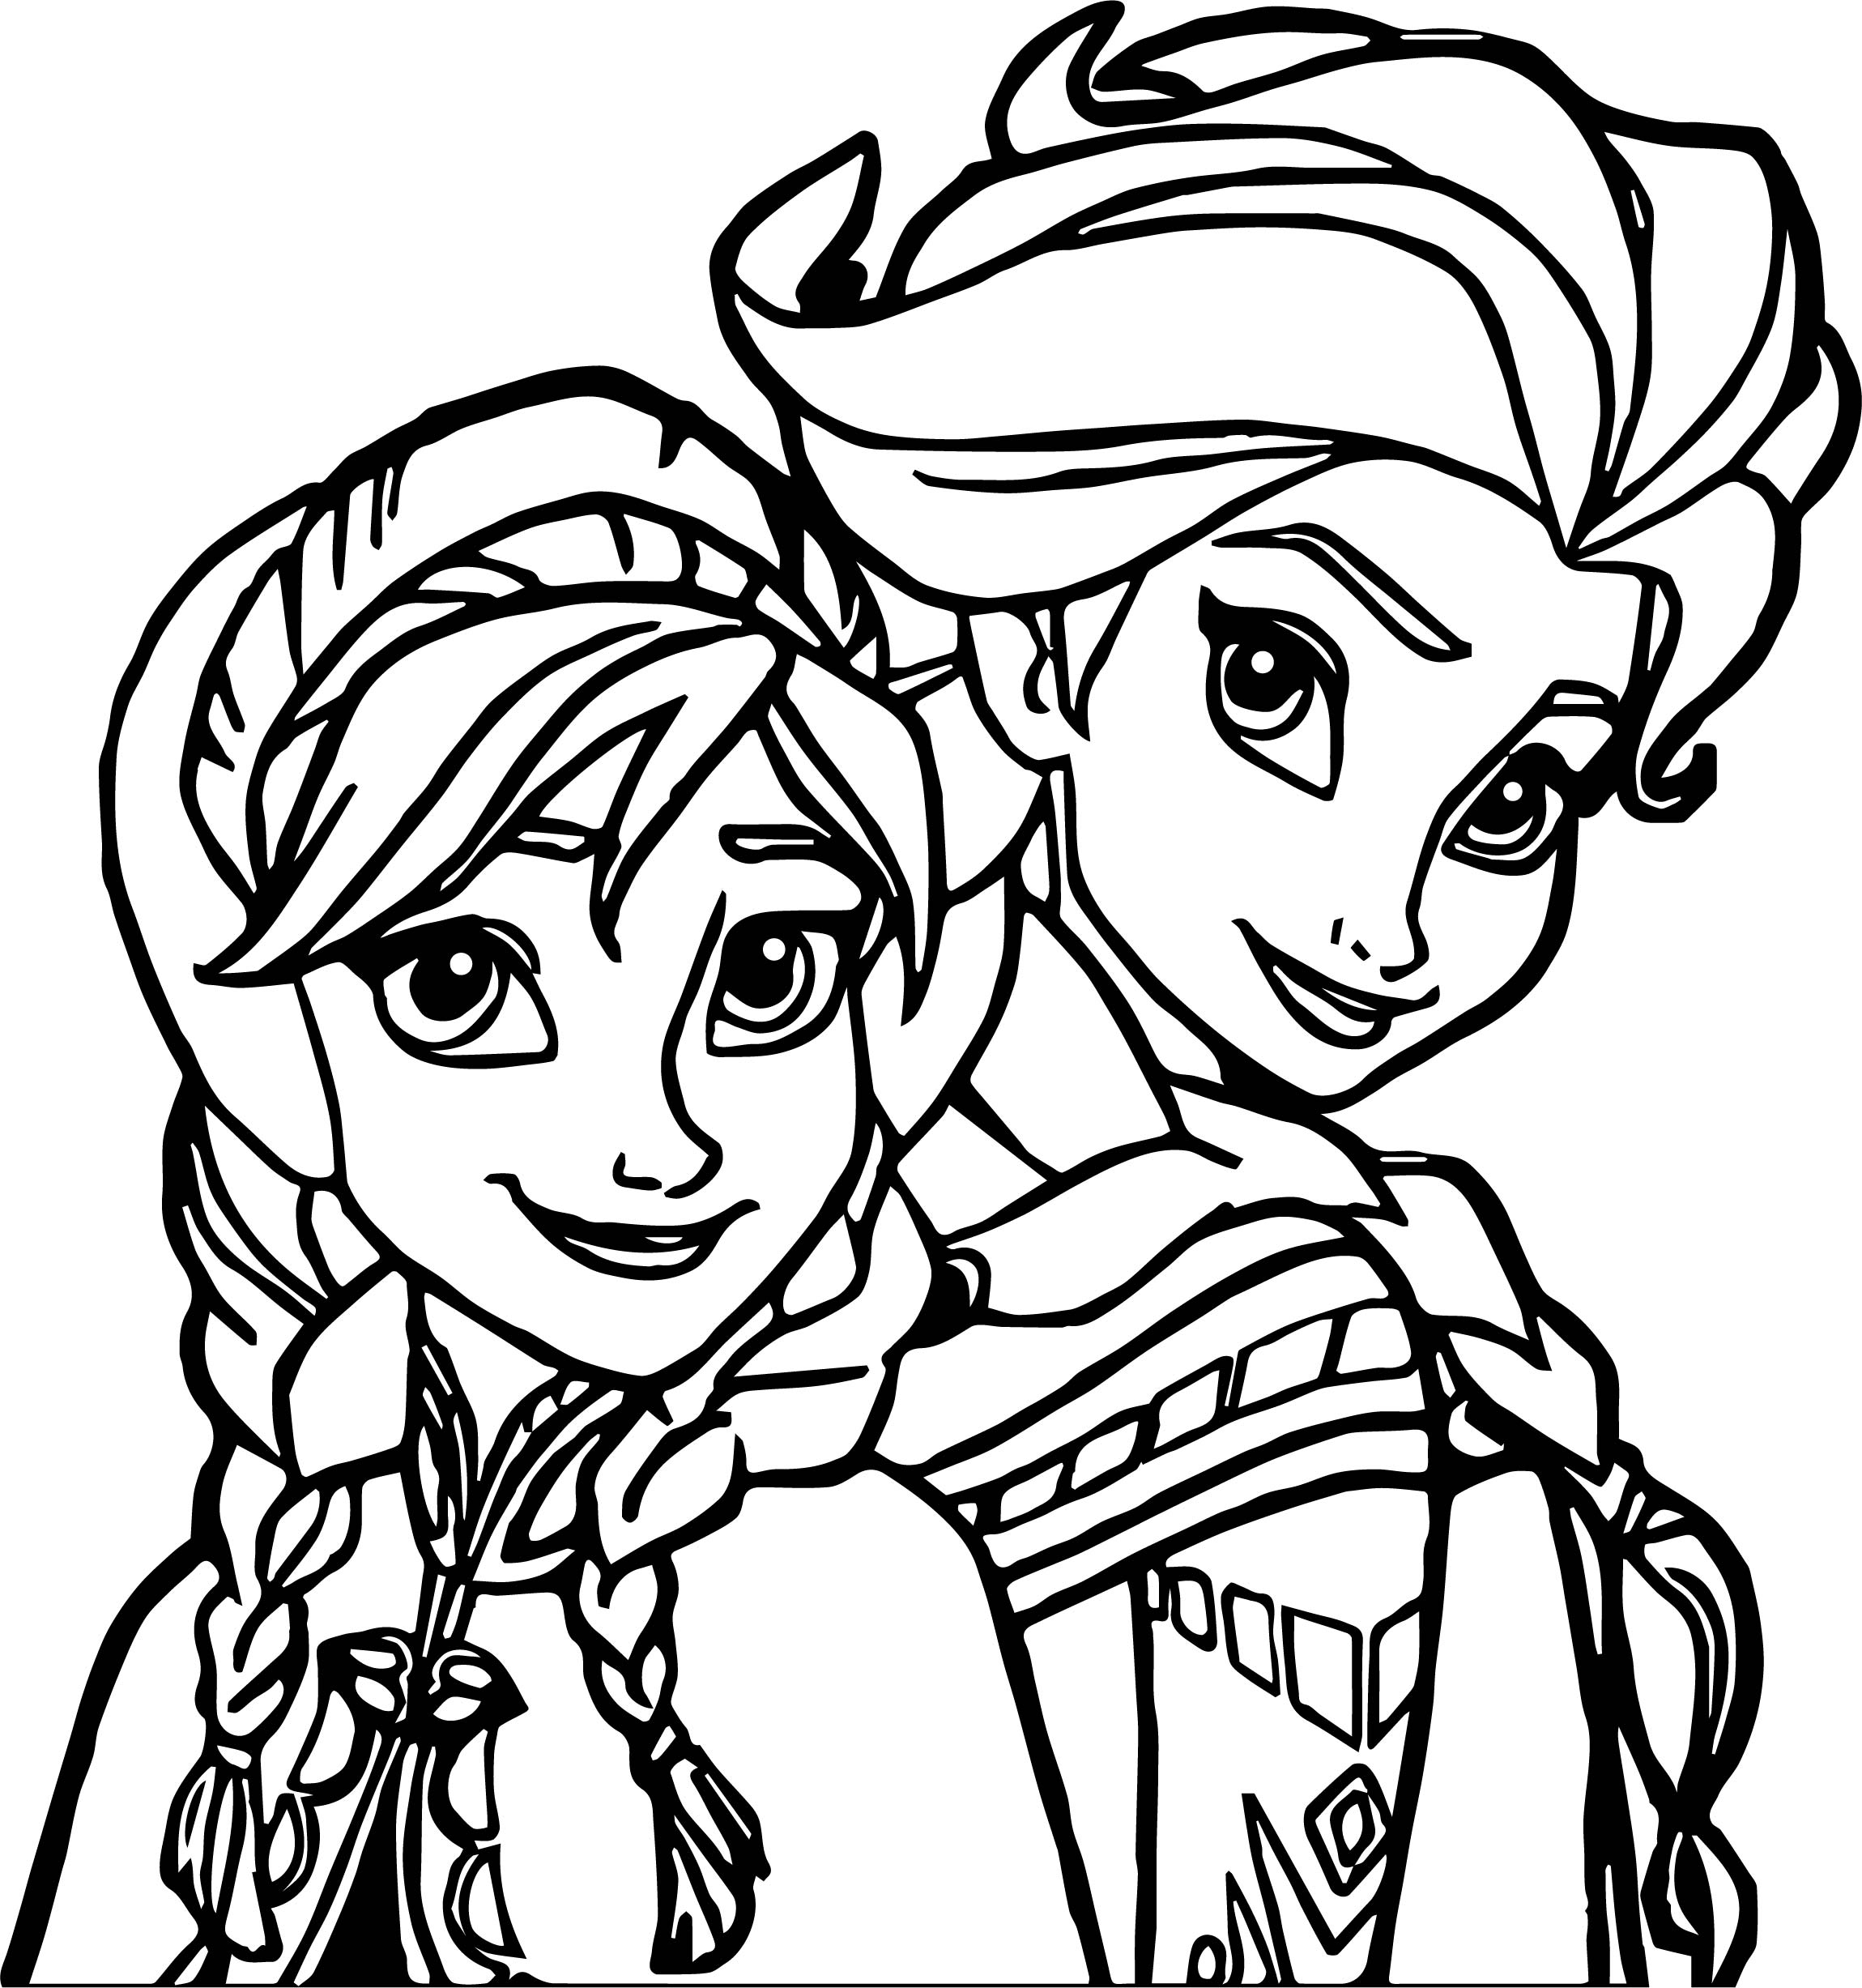 elsa and anna pictures to color elsa and anna coloring pages to download and print for free to and elsa anna color pictures